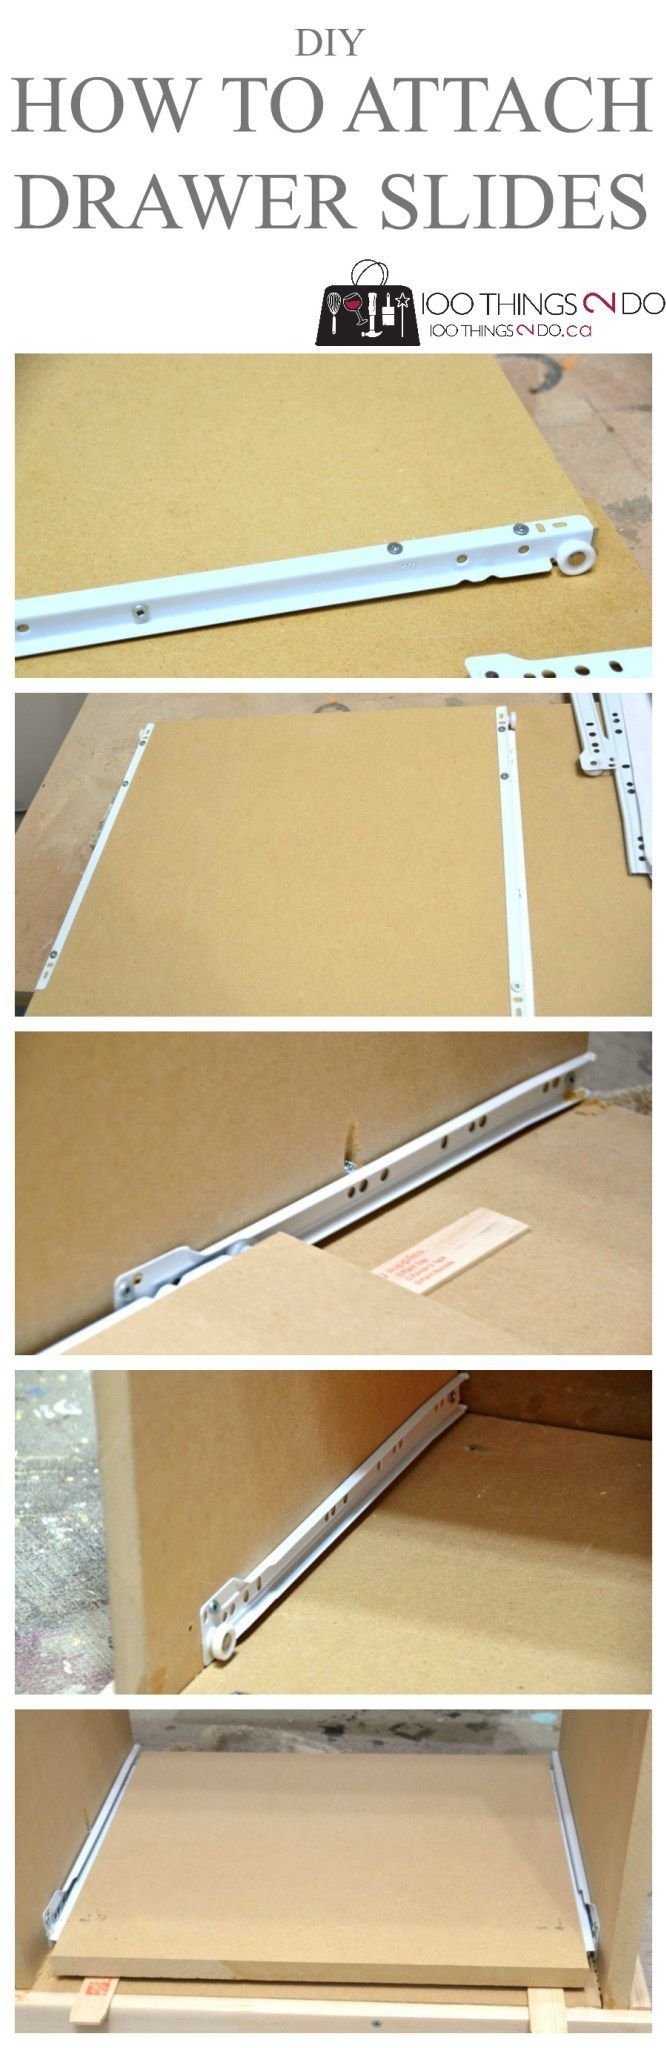 How to attach drawer slides.